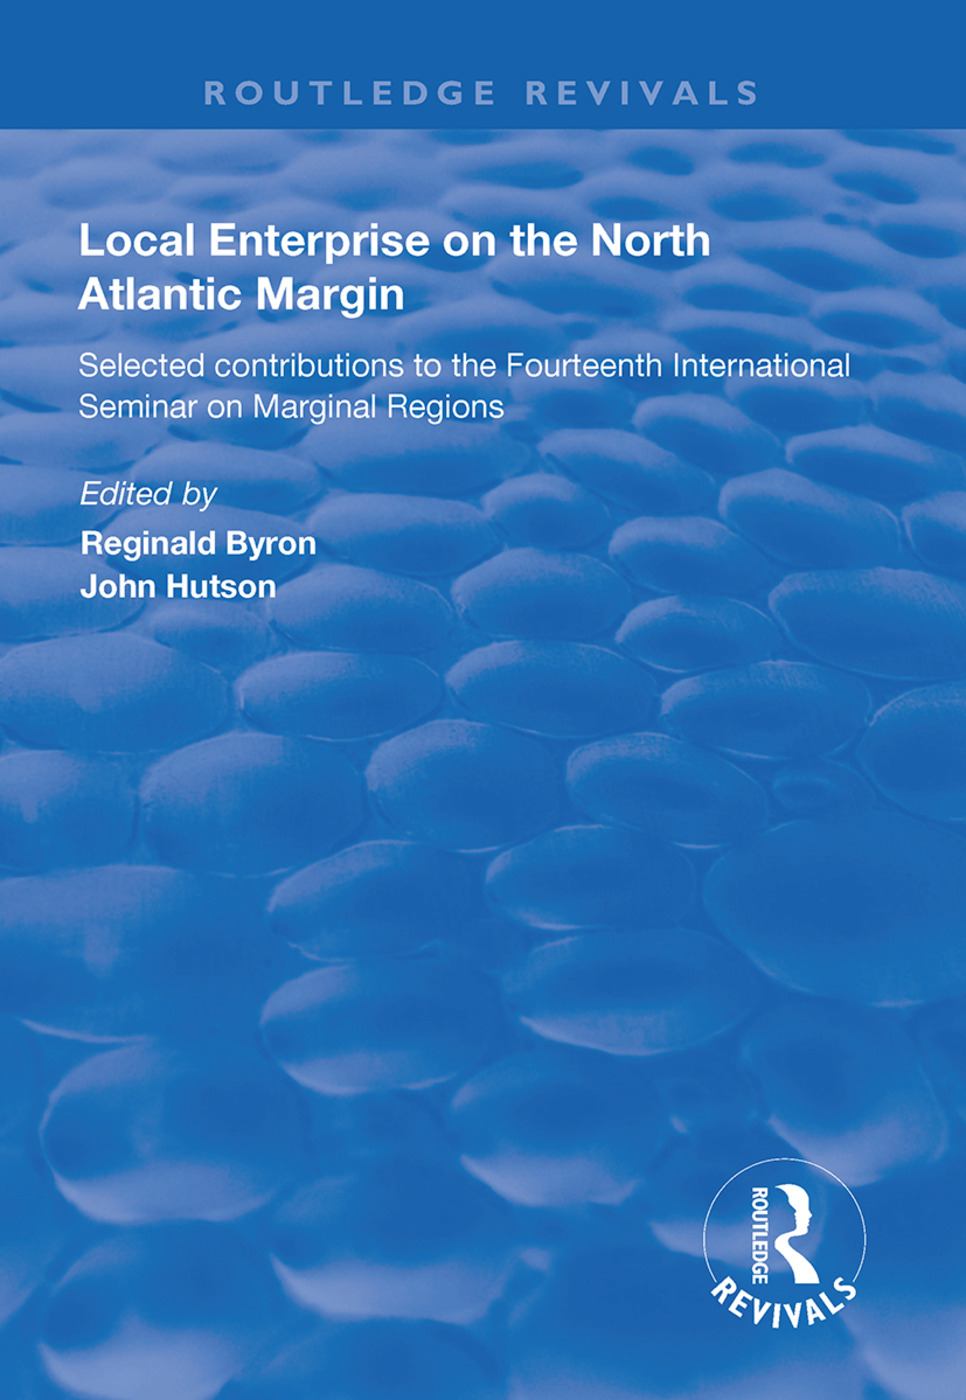 Local Enterprise on the North Atlantic Margin